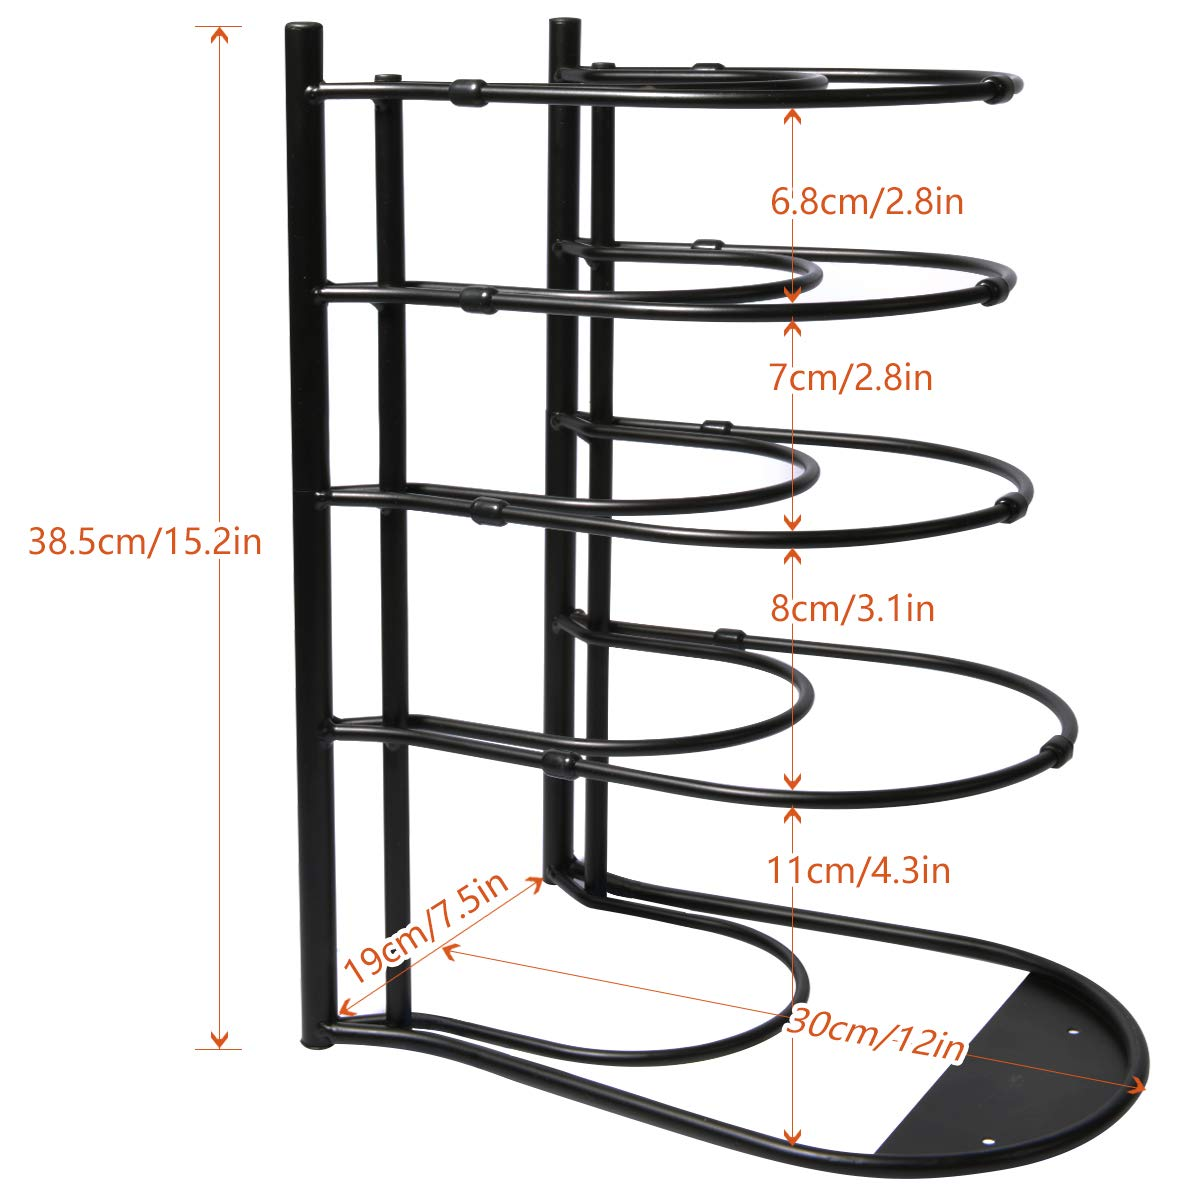 Pan Pot Lid Rack Organizer Shelf Heavy Duty, Kitchen Cabinet Cookware Rack Countertop Pantry Storage Holder, Black (Upgraded version) by WOSOVO (Image #5)